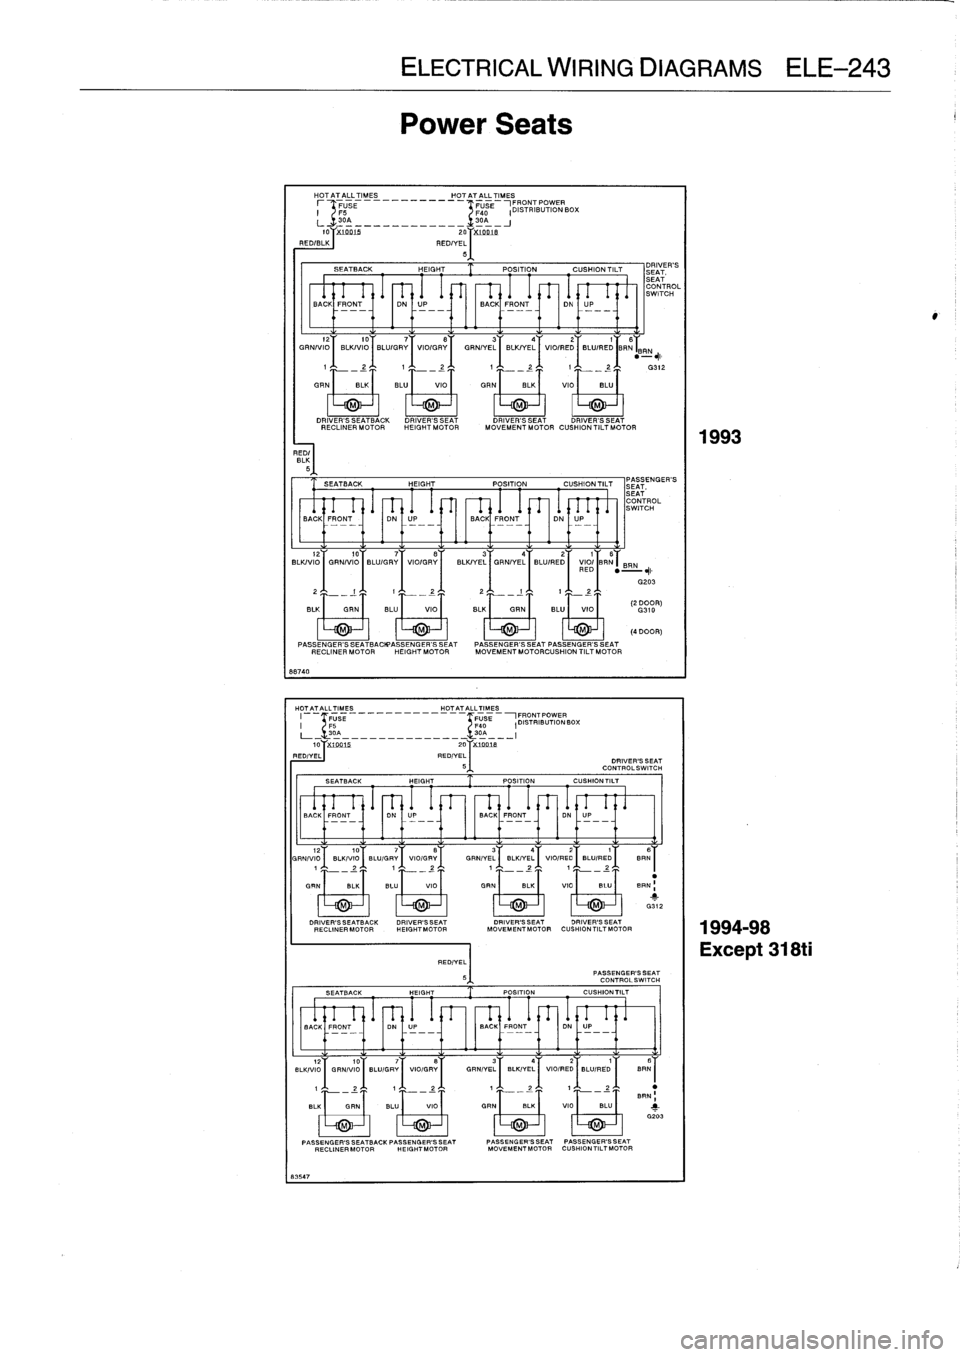 BMW 328i 1997 E36 Workshop Manual (759 Pages), Page 730